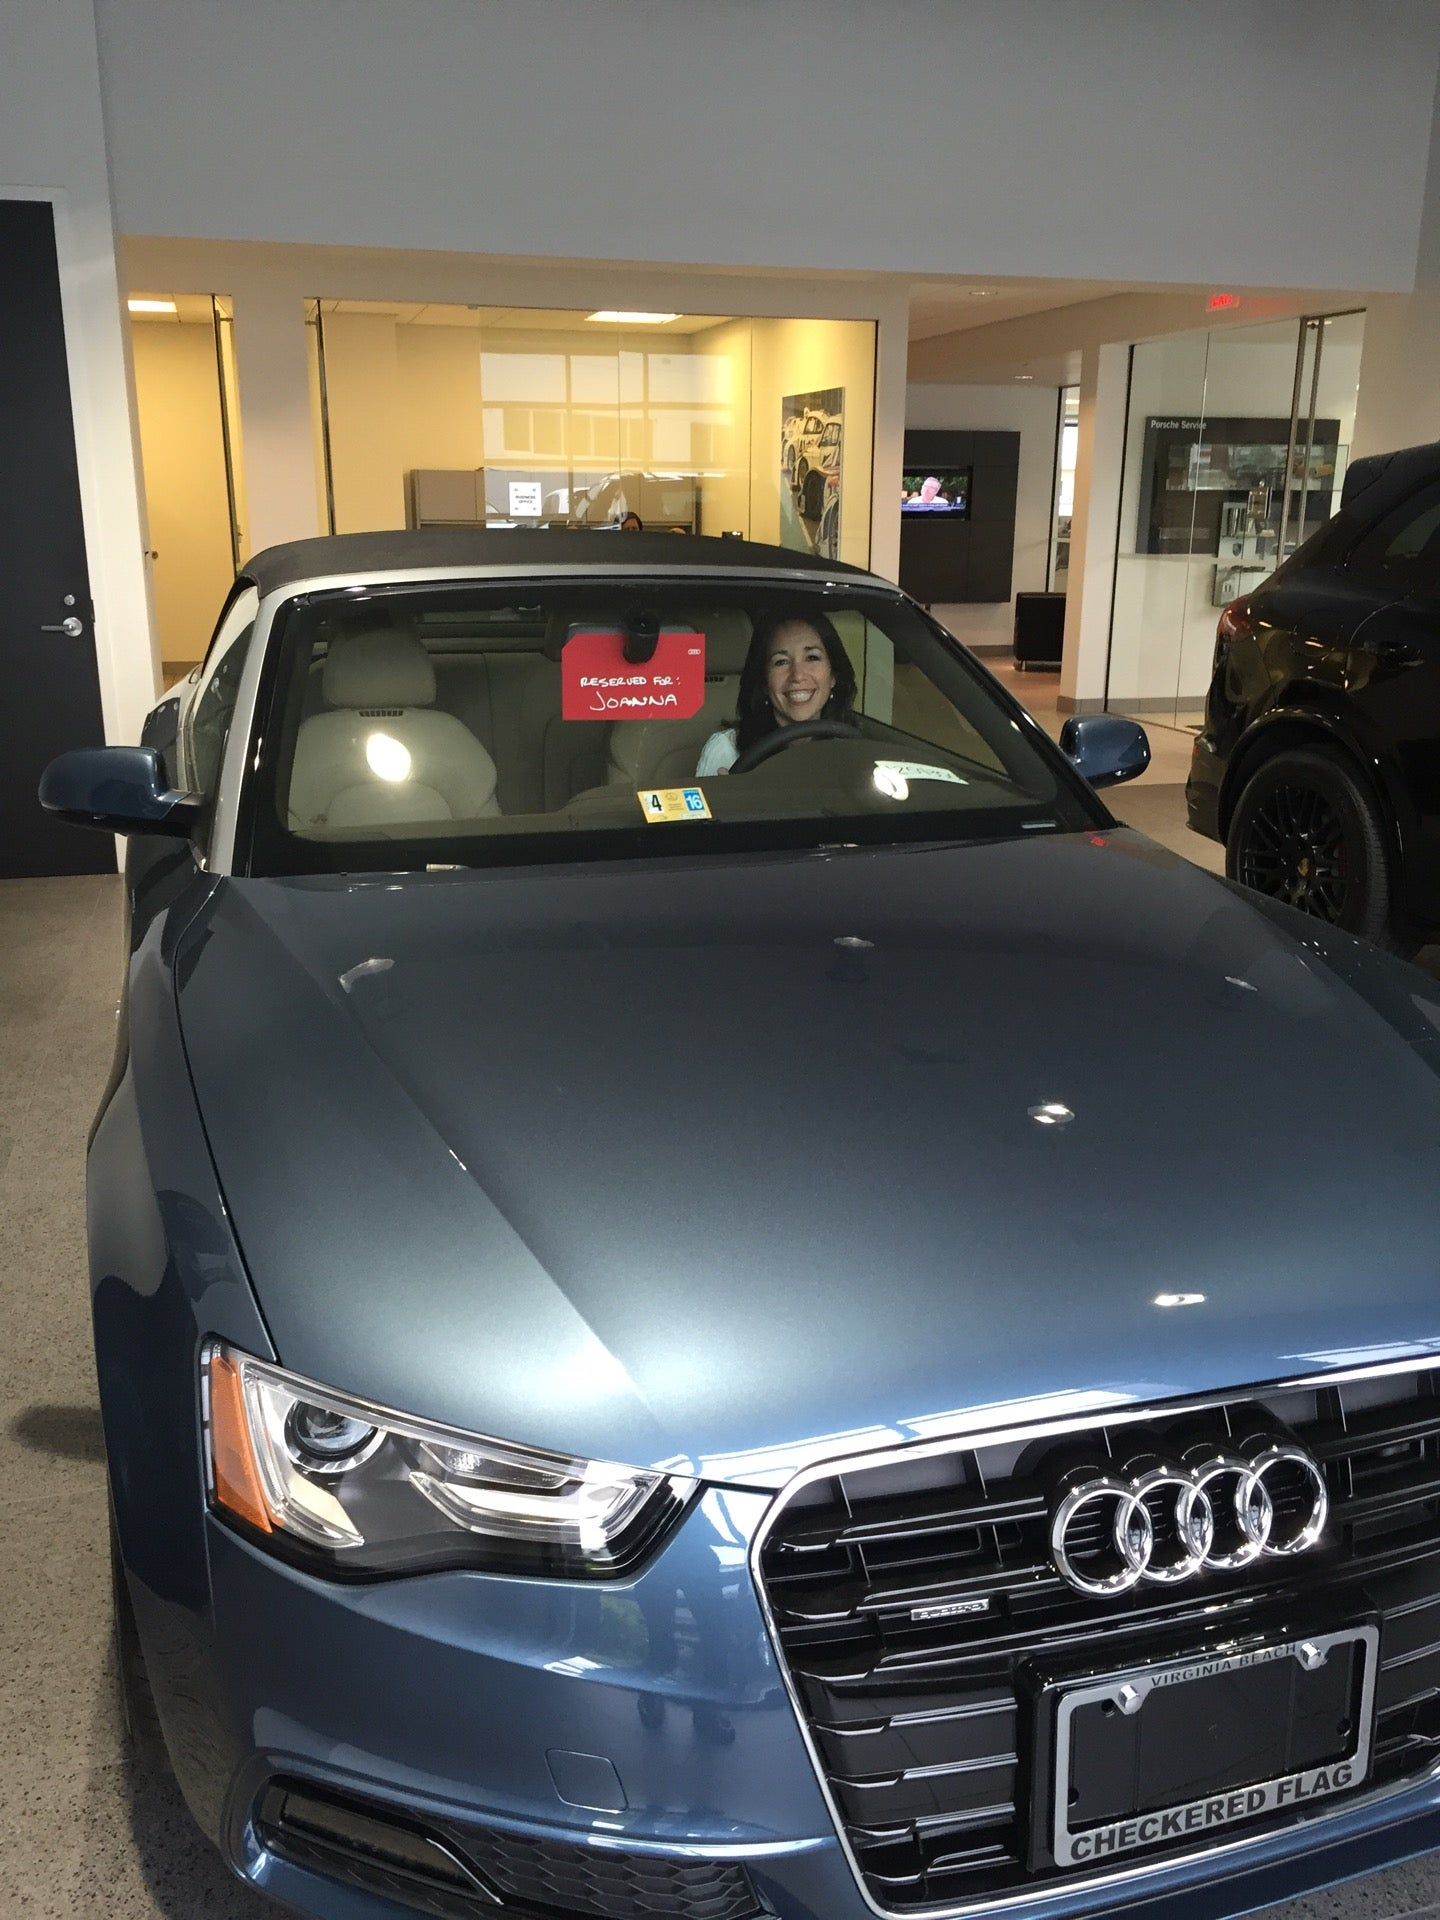 Checkered Flag,audi,car parts,car repair,new cars,used cars,vehicle service